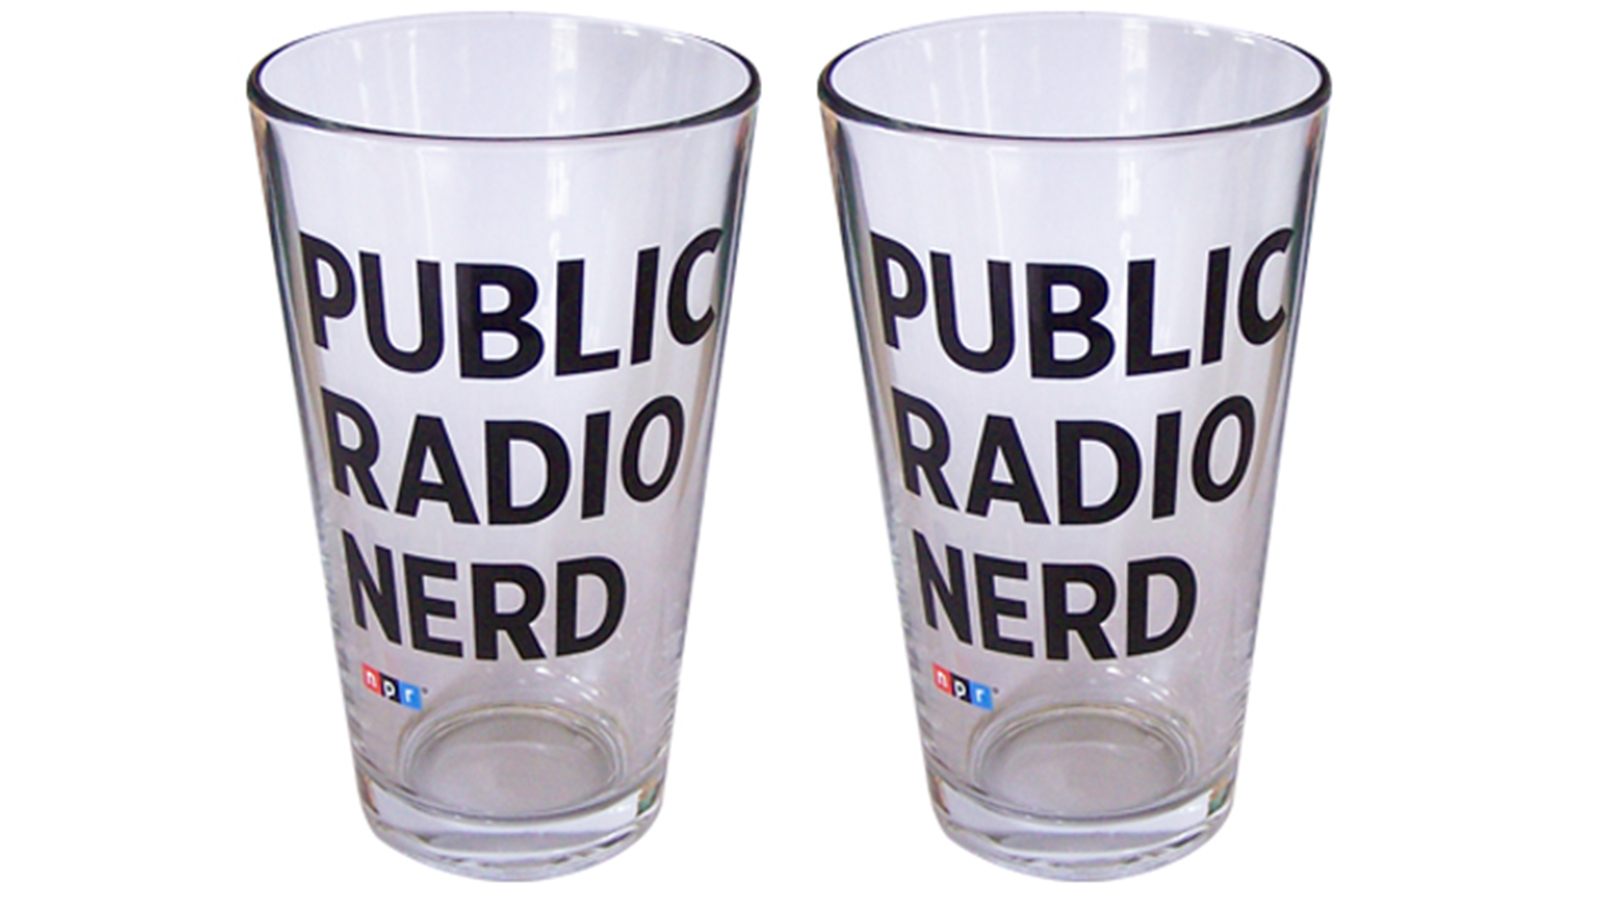 Pint Glasses: Pair of NPR® Public Radio Nerd Pint Glasses